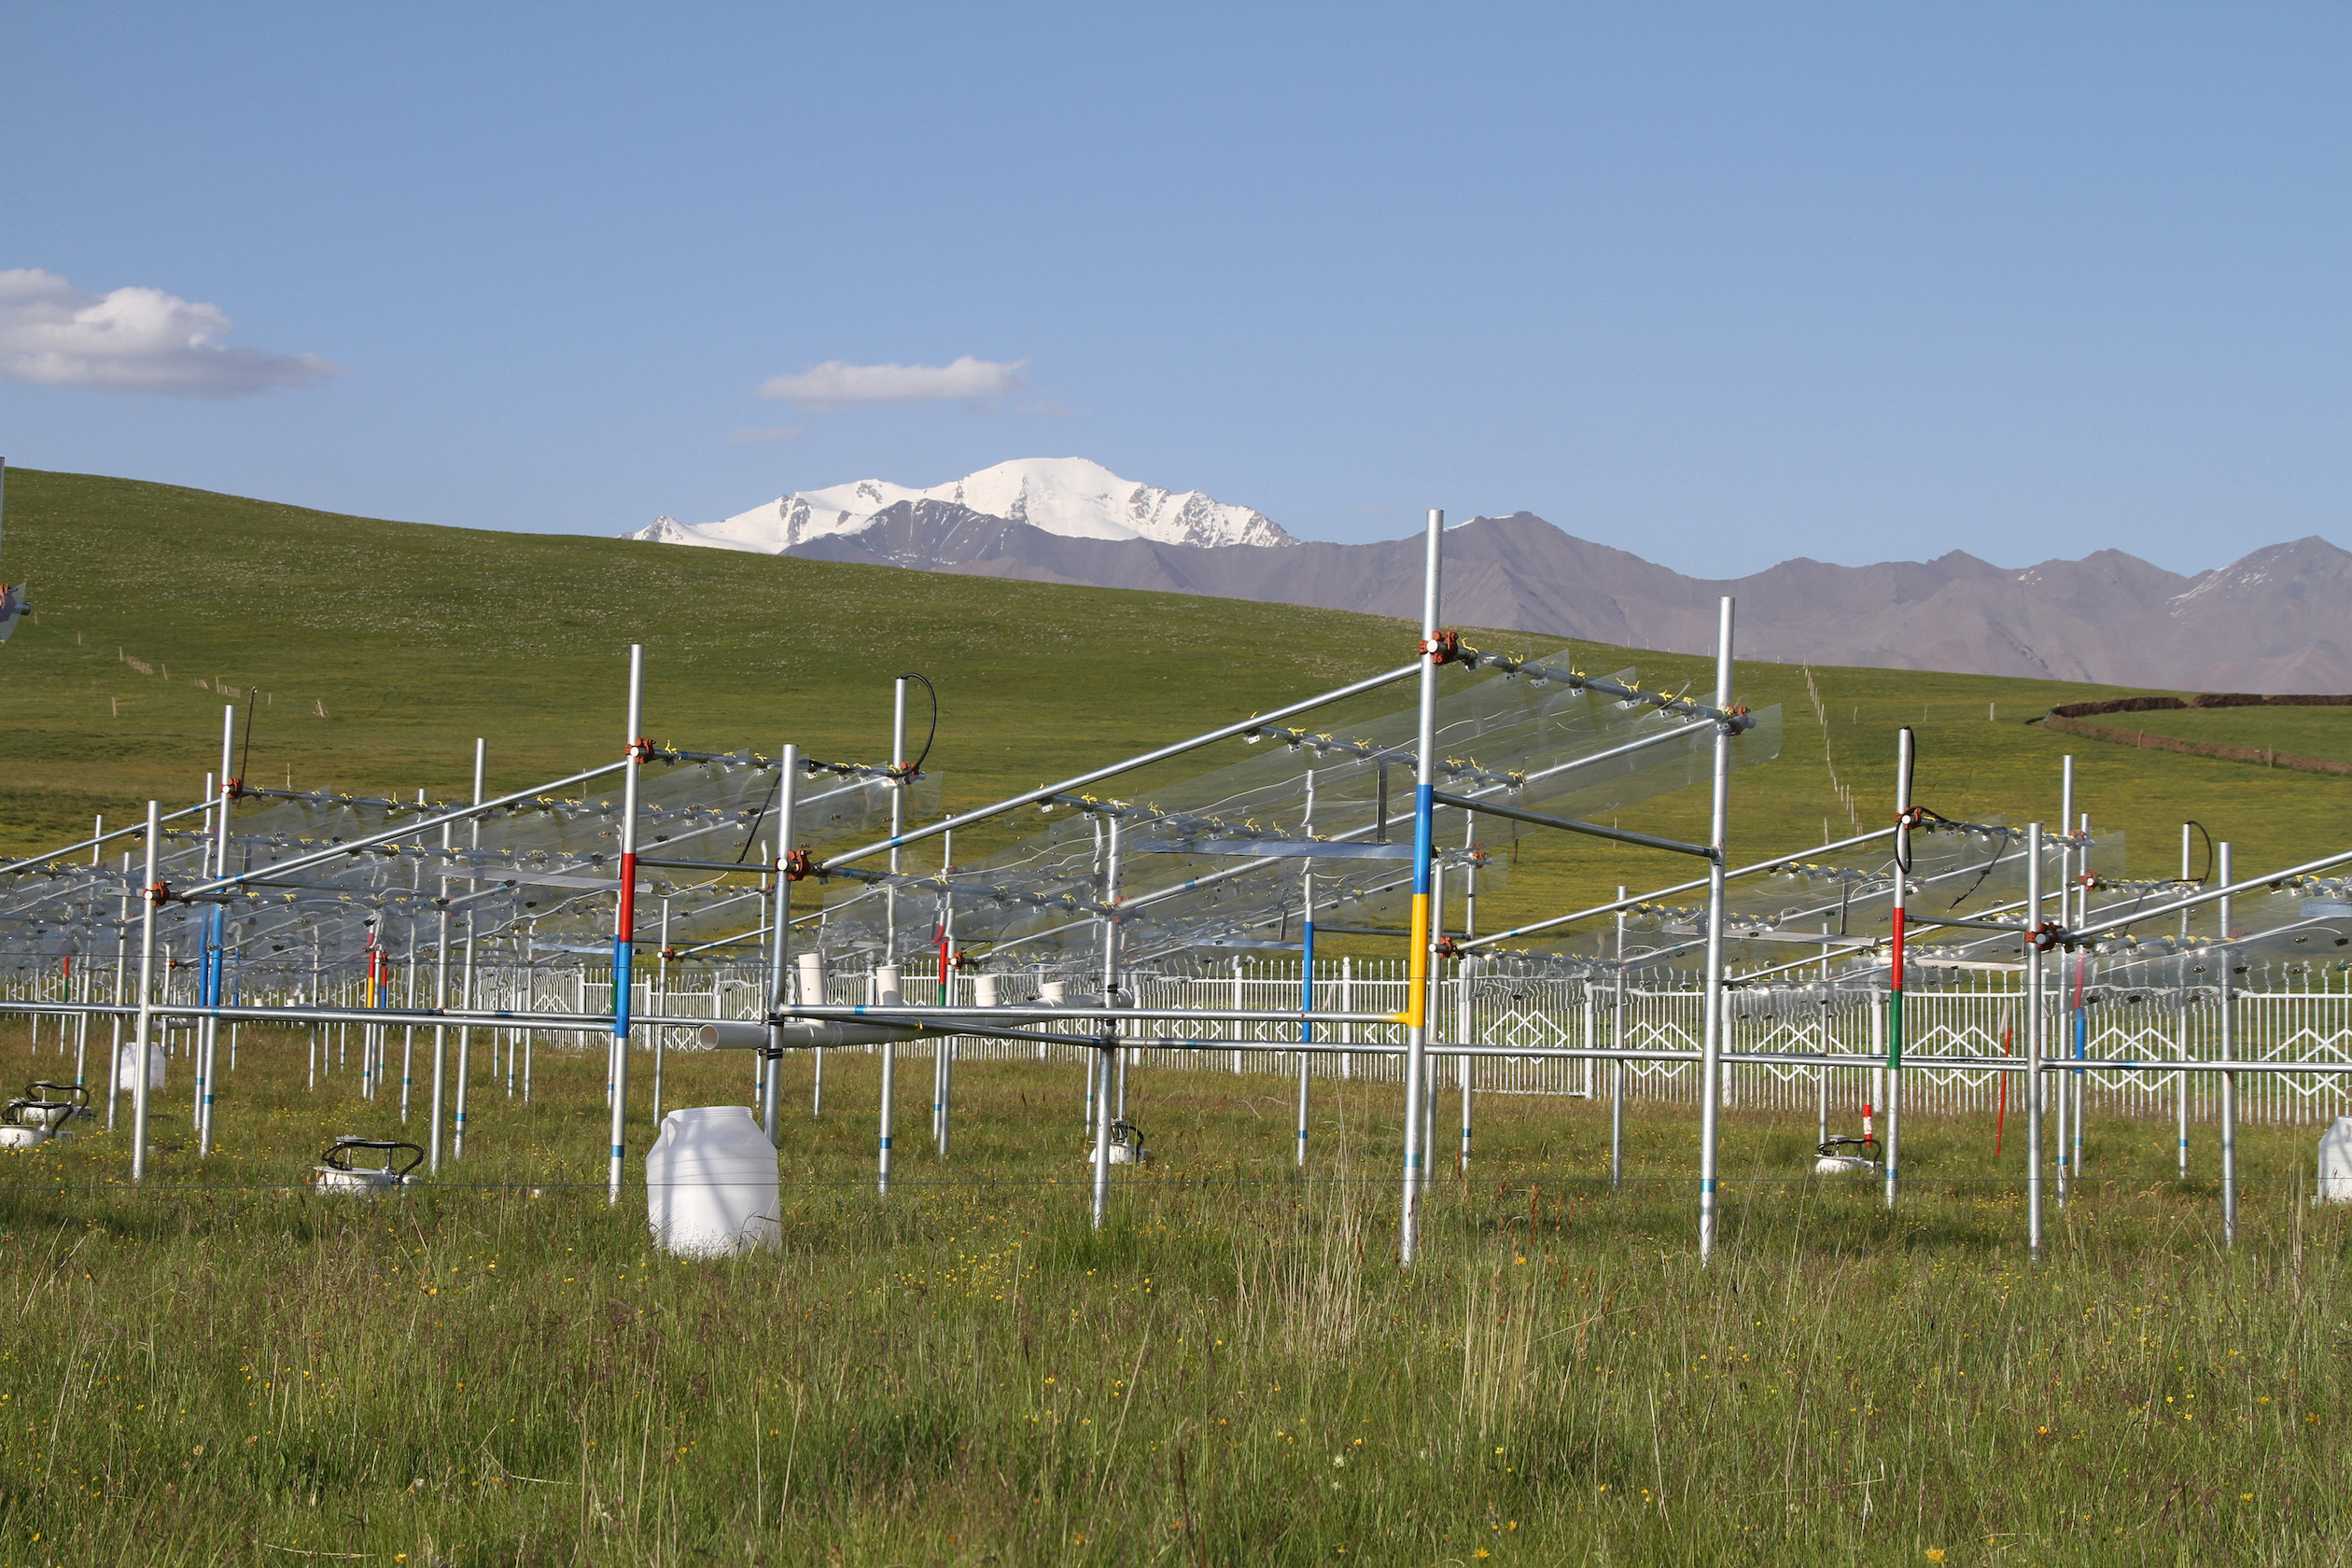 A warming climate could jeopardize the livelihoods of farmers and herders on the alpine grasslands in Asia's Tibetan Plateau.